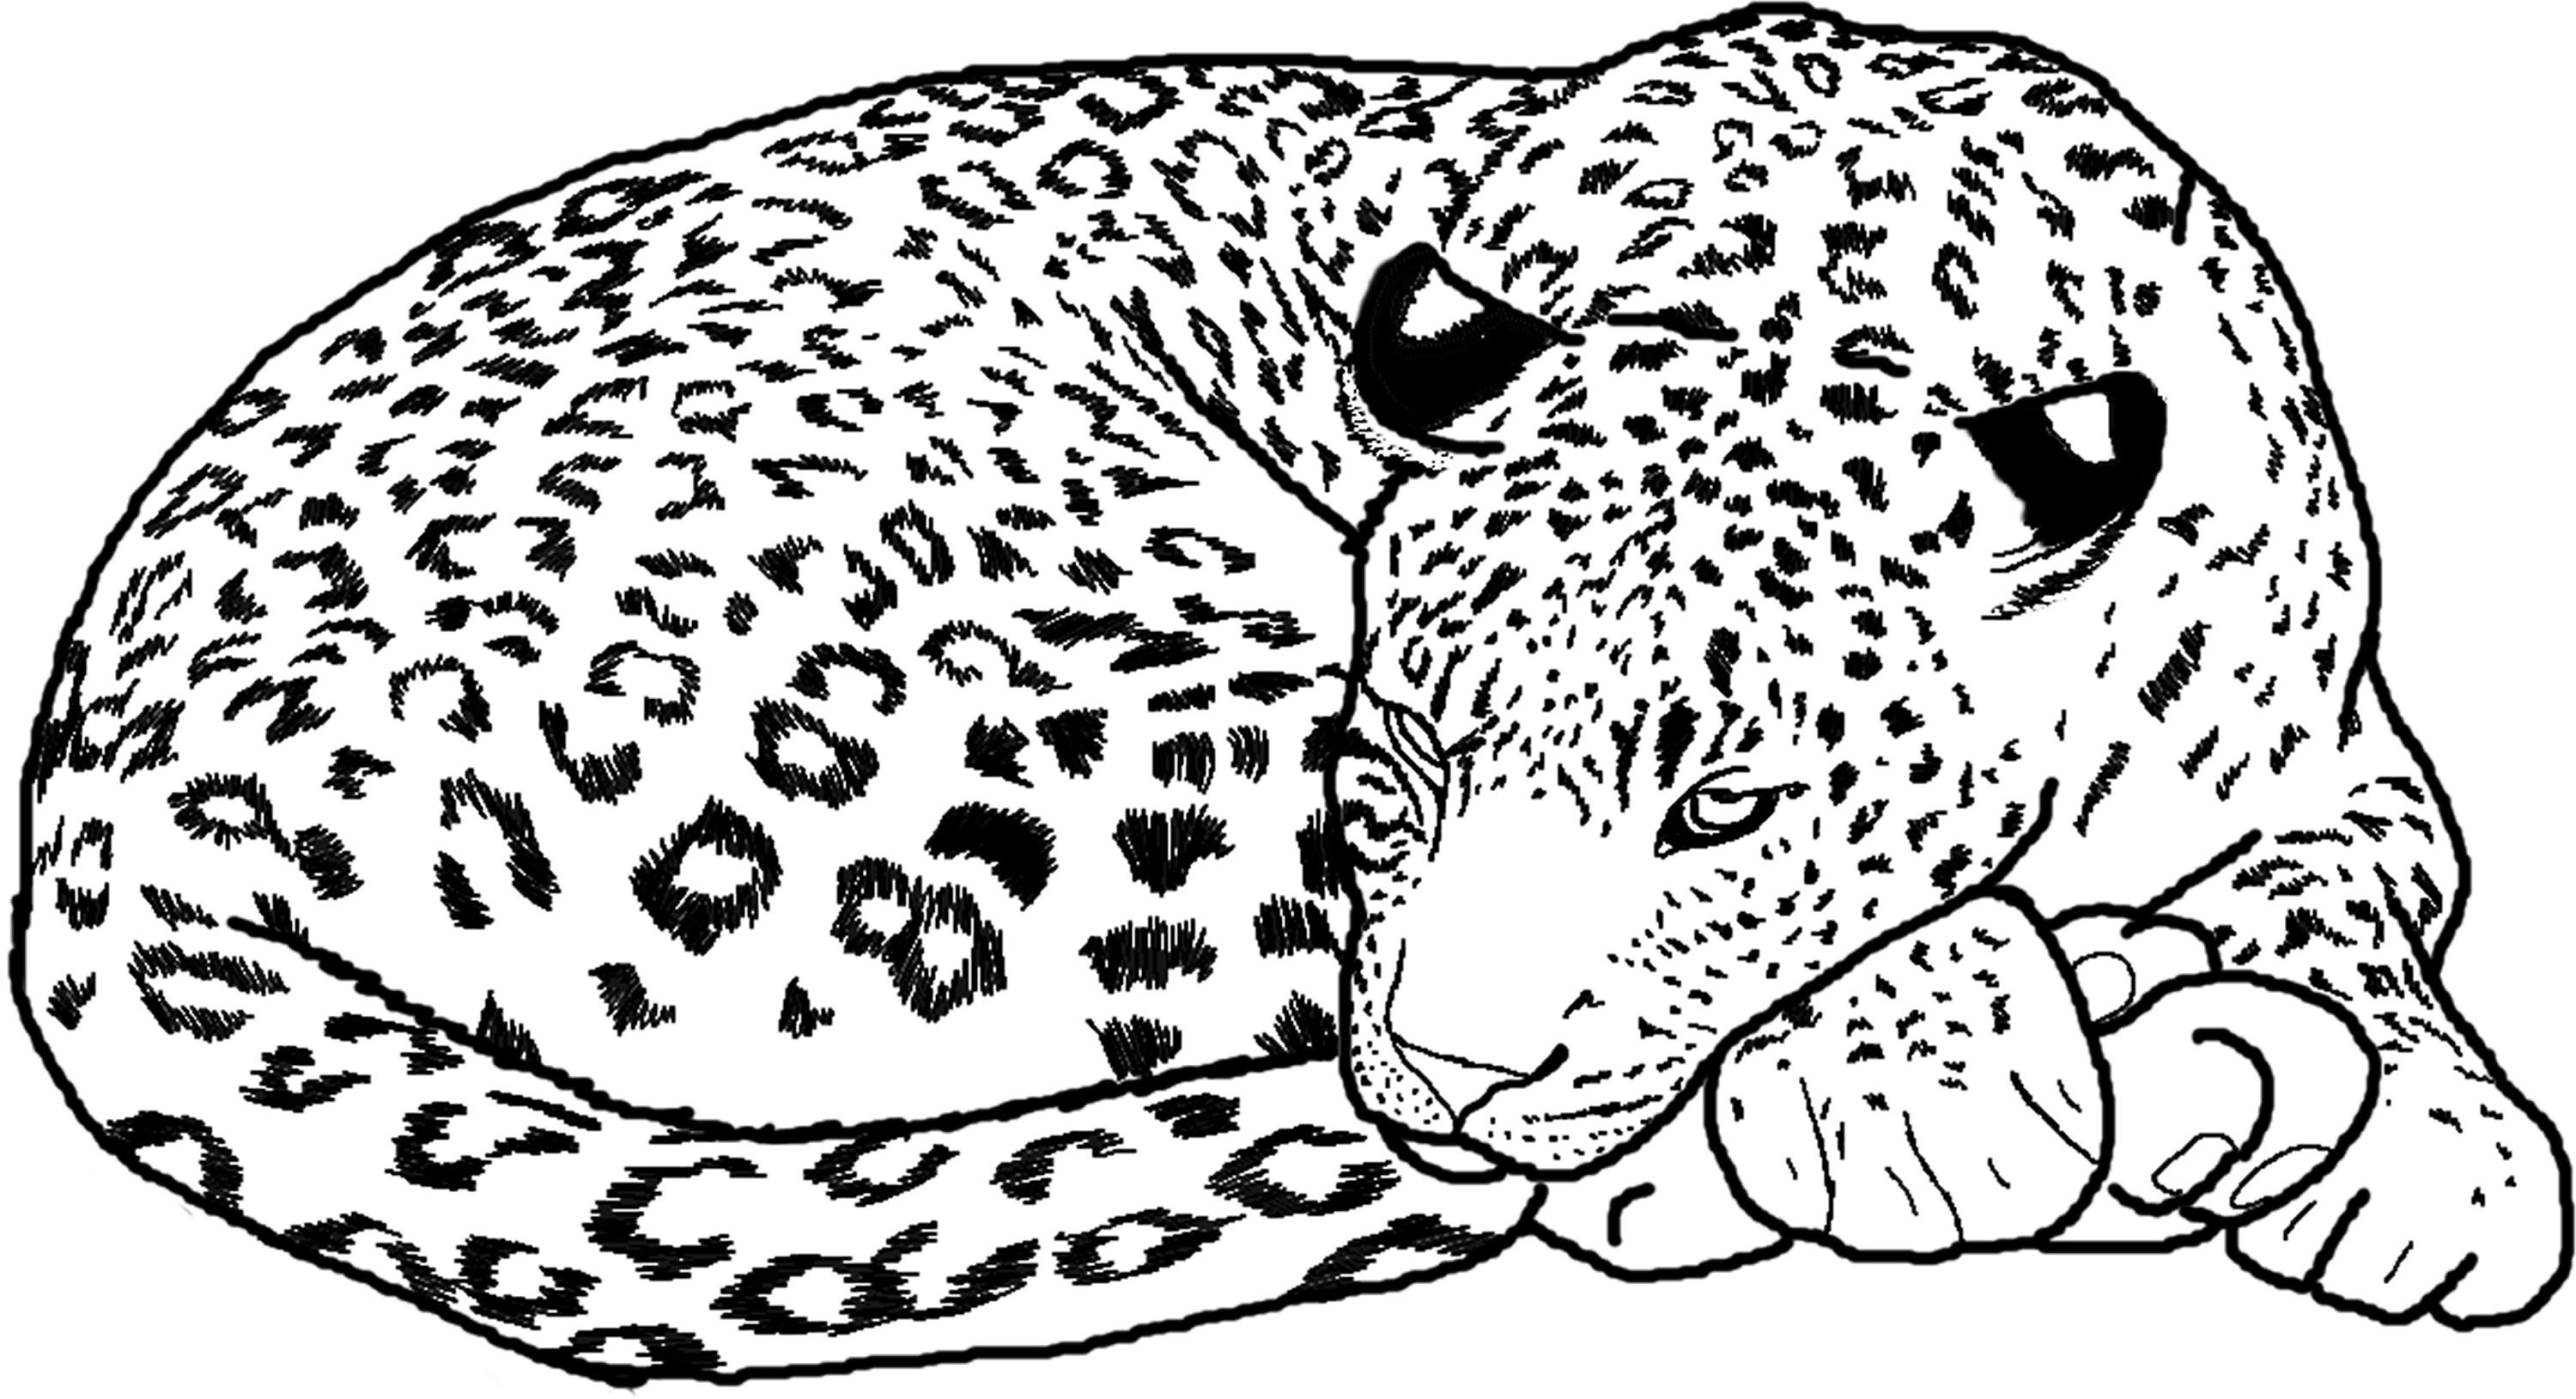 coloring pictures of cheetahs 20 free printable cheetah coloring pages pictures cheetahs coloring of